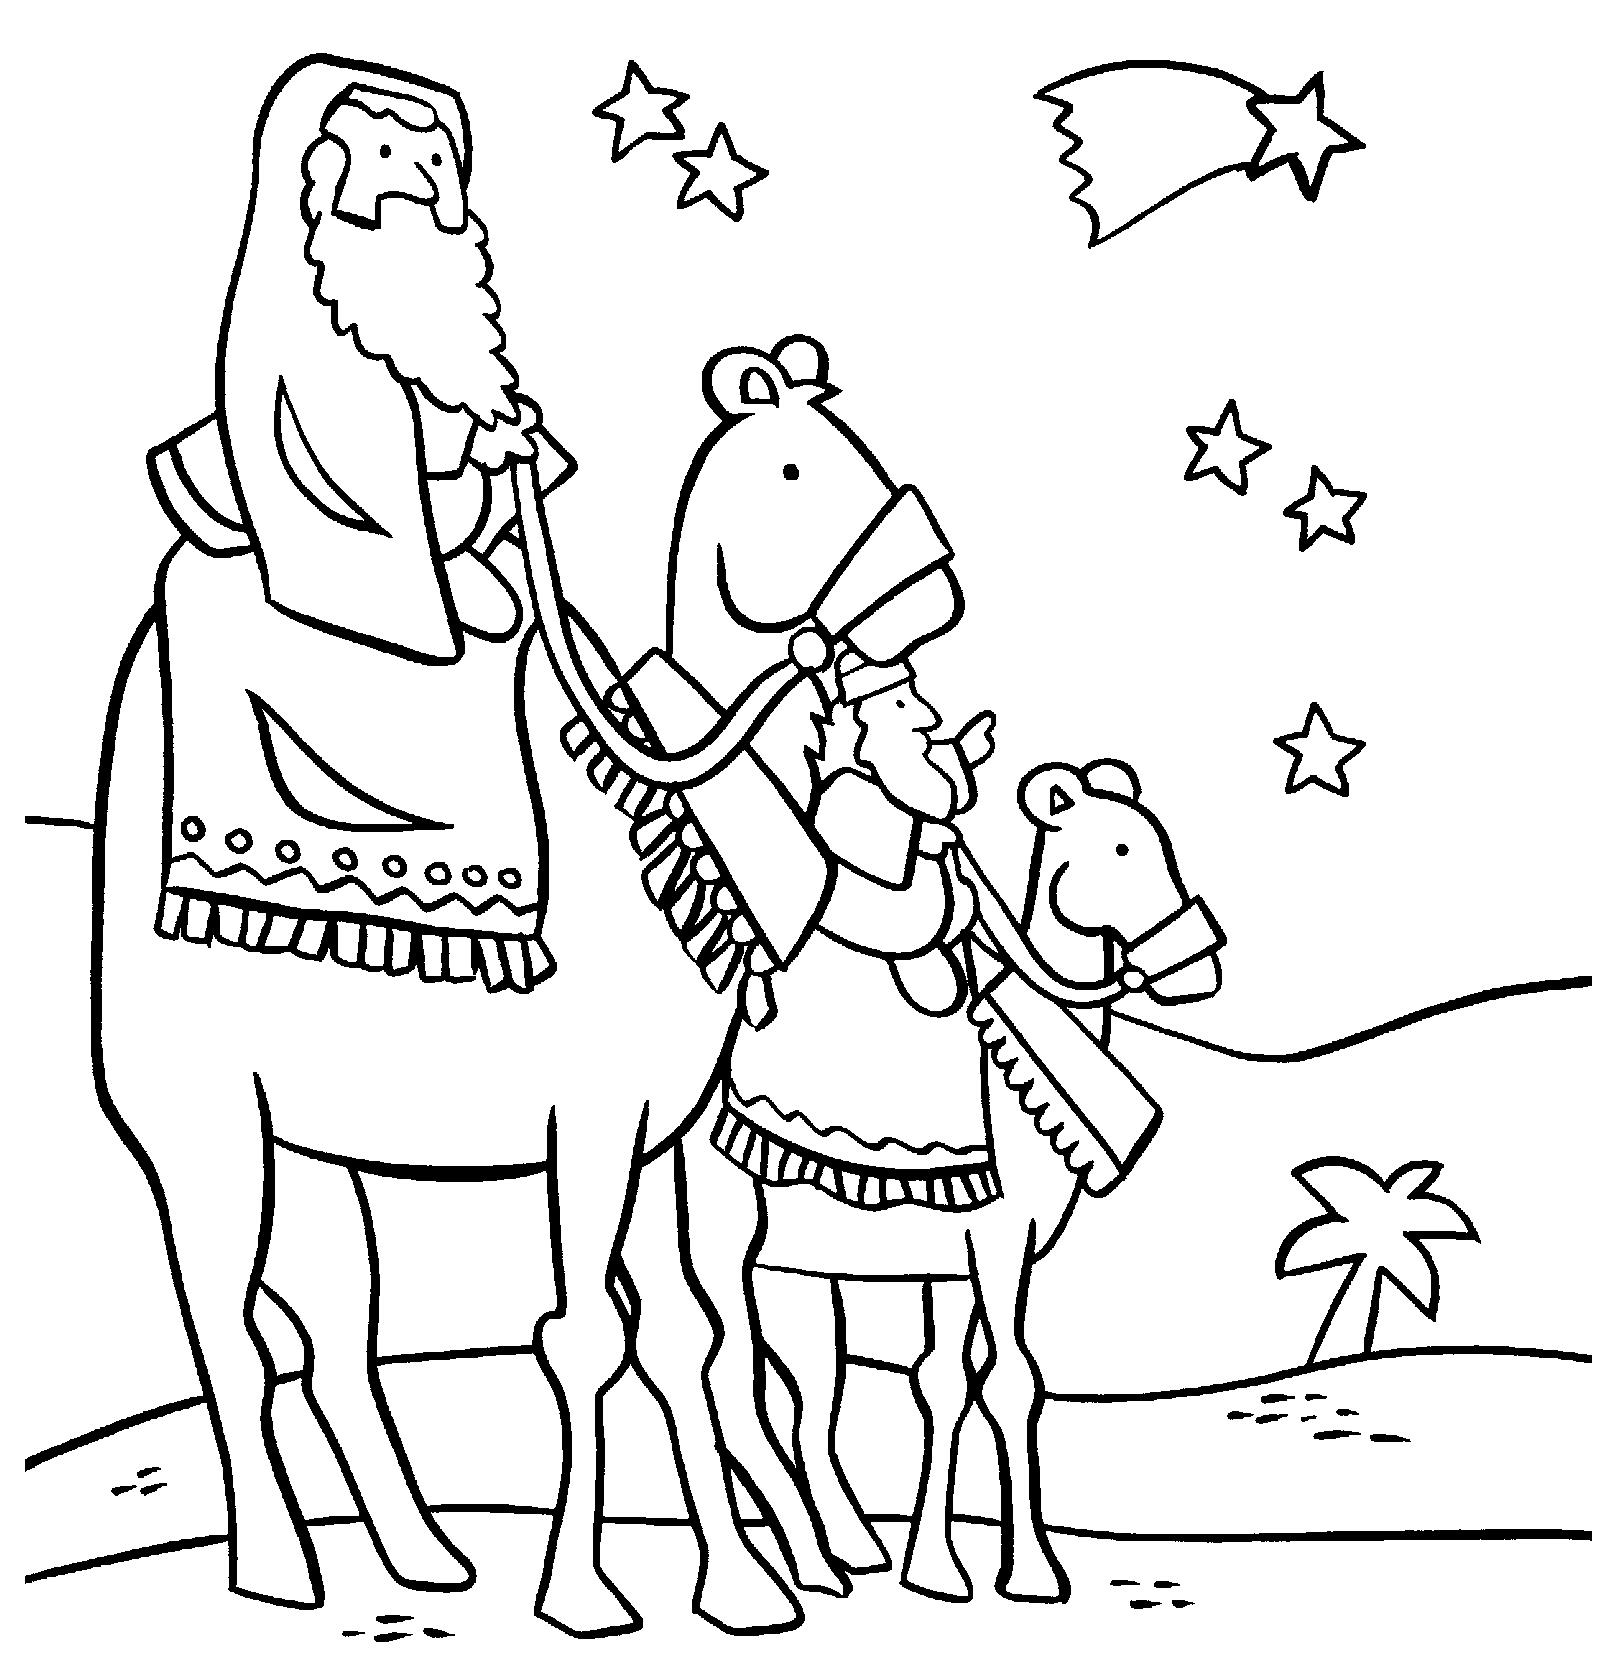 gold frankincense and myrrh coloring pages | Wise Man coloring page | Biblical Magi | Three Kings